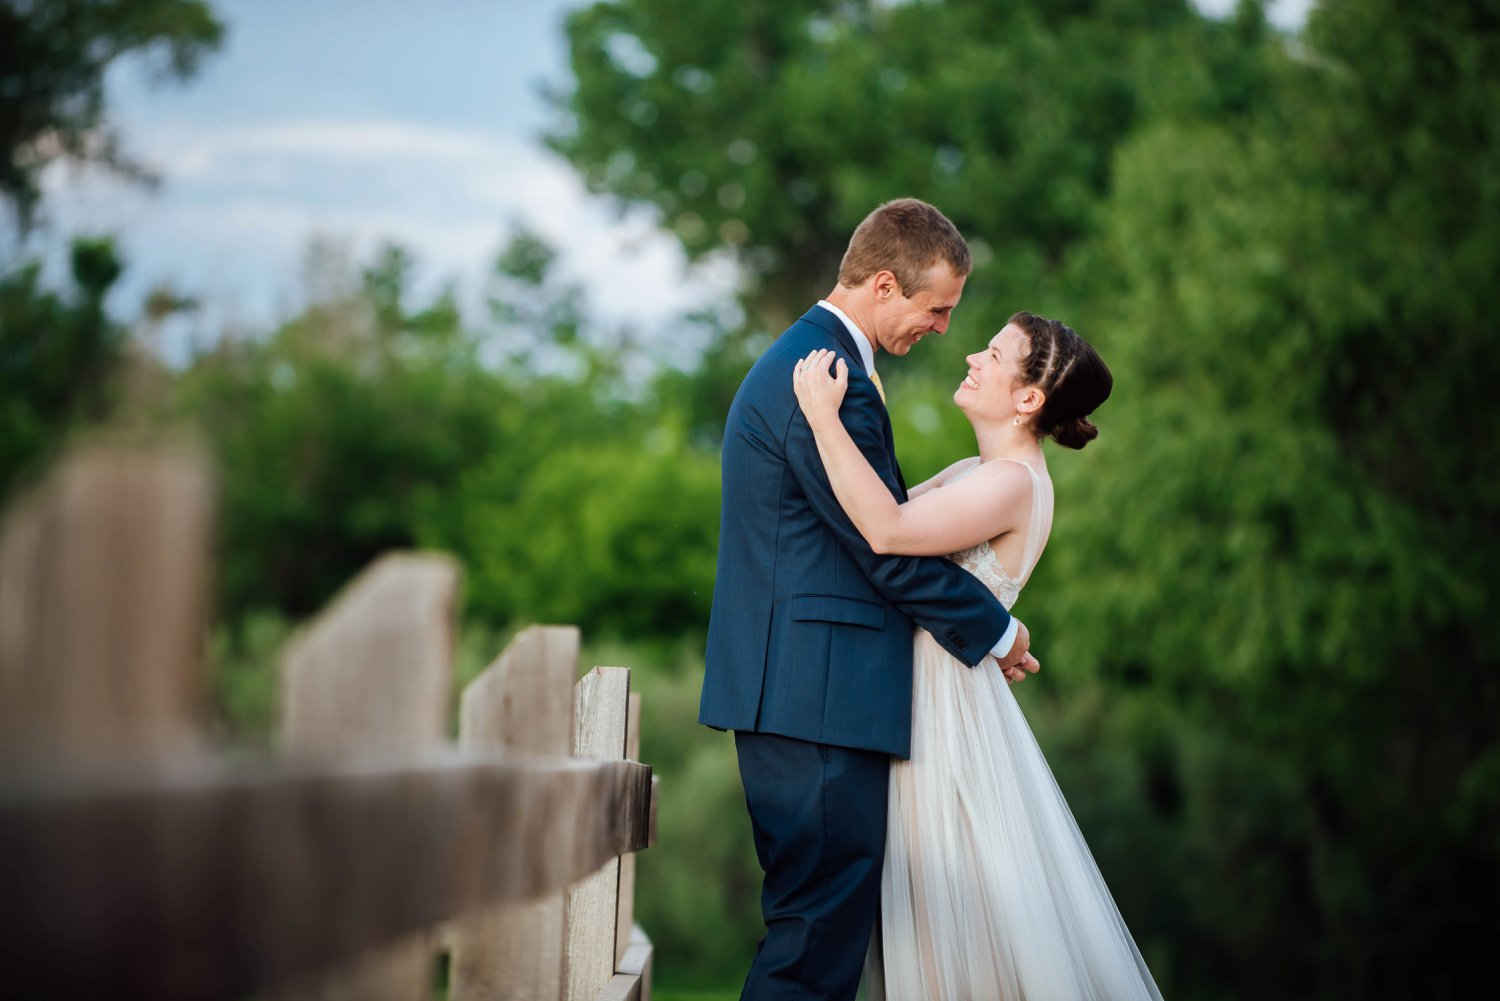 The wooden fences surrounding the Denver Botanic Gardens in Chatfield allows for some great wedding photos!Photo by Maddie Mae Photography